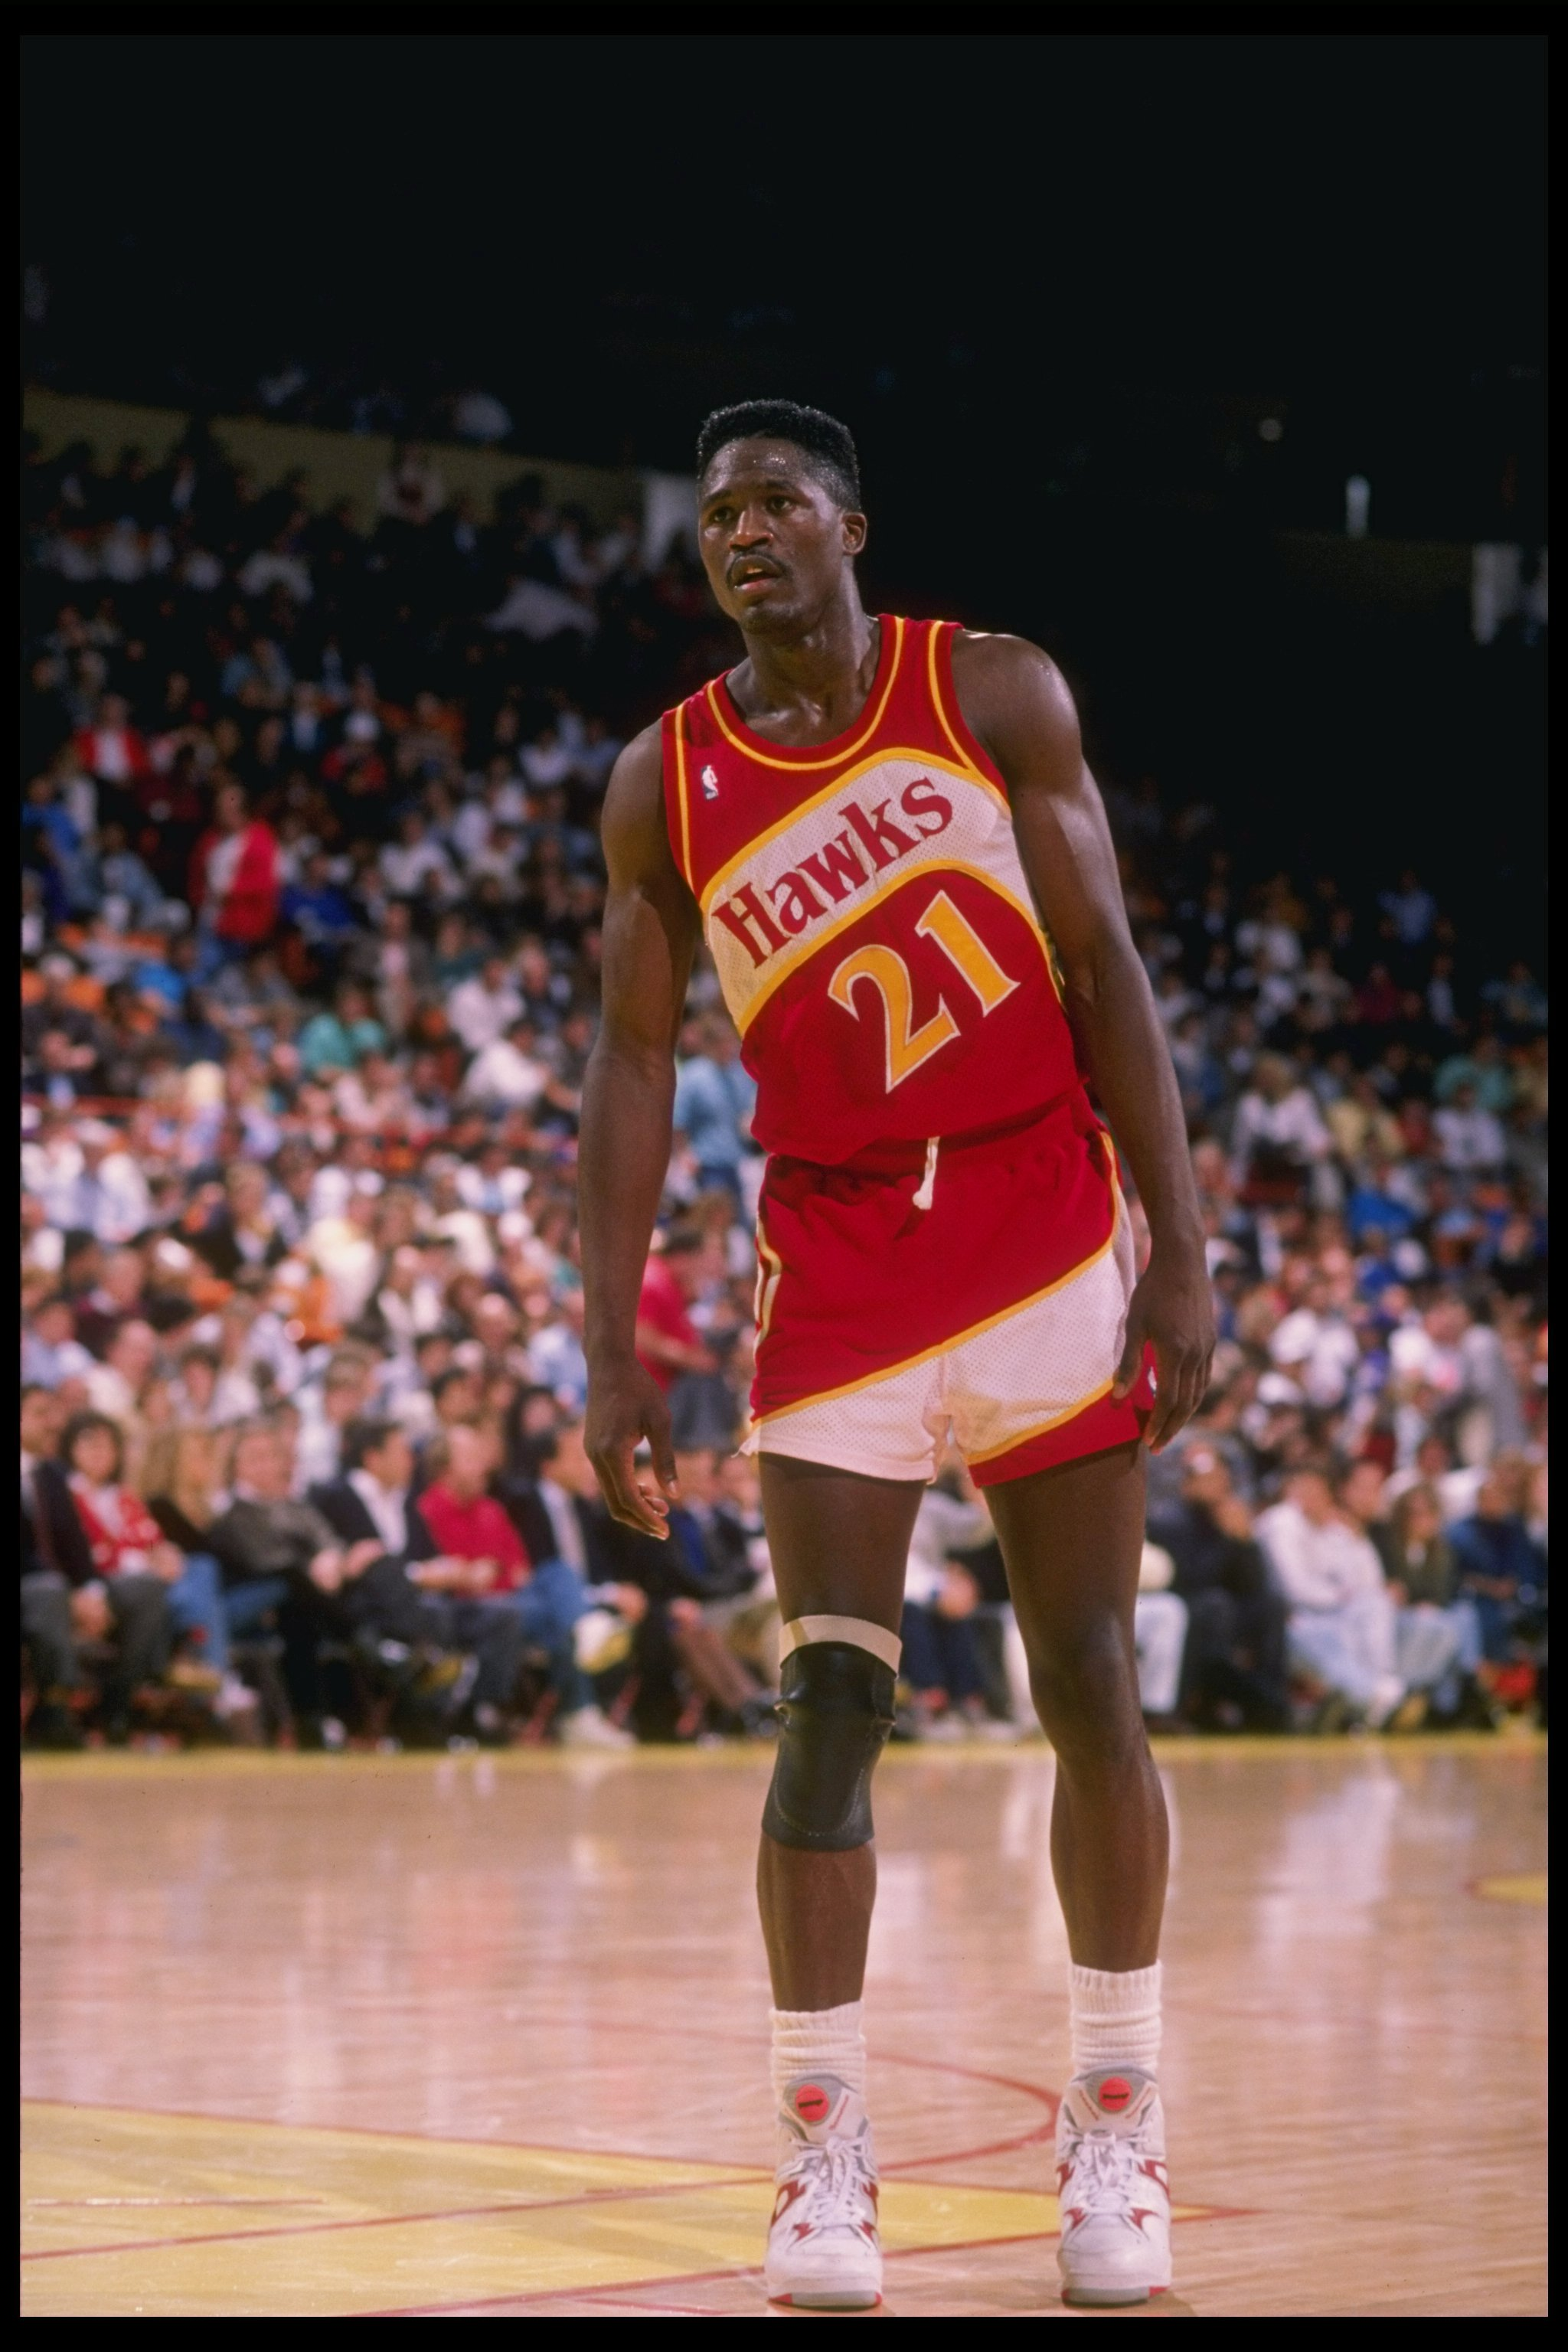 Forward Dominique Wilkins of the Atlanta Hawks stands on the court during a game.